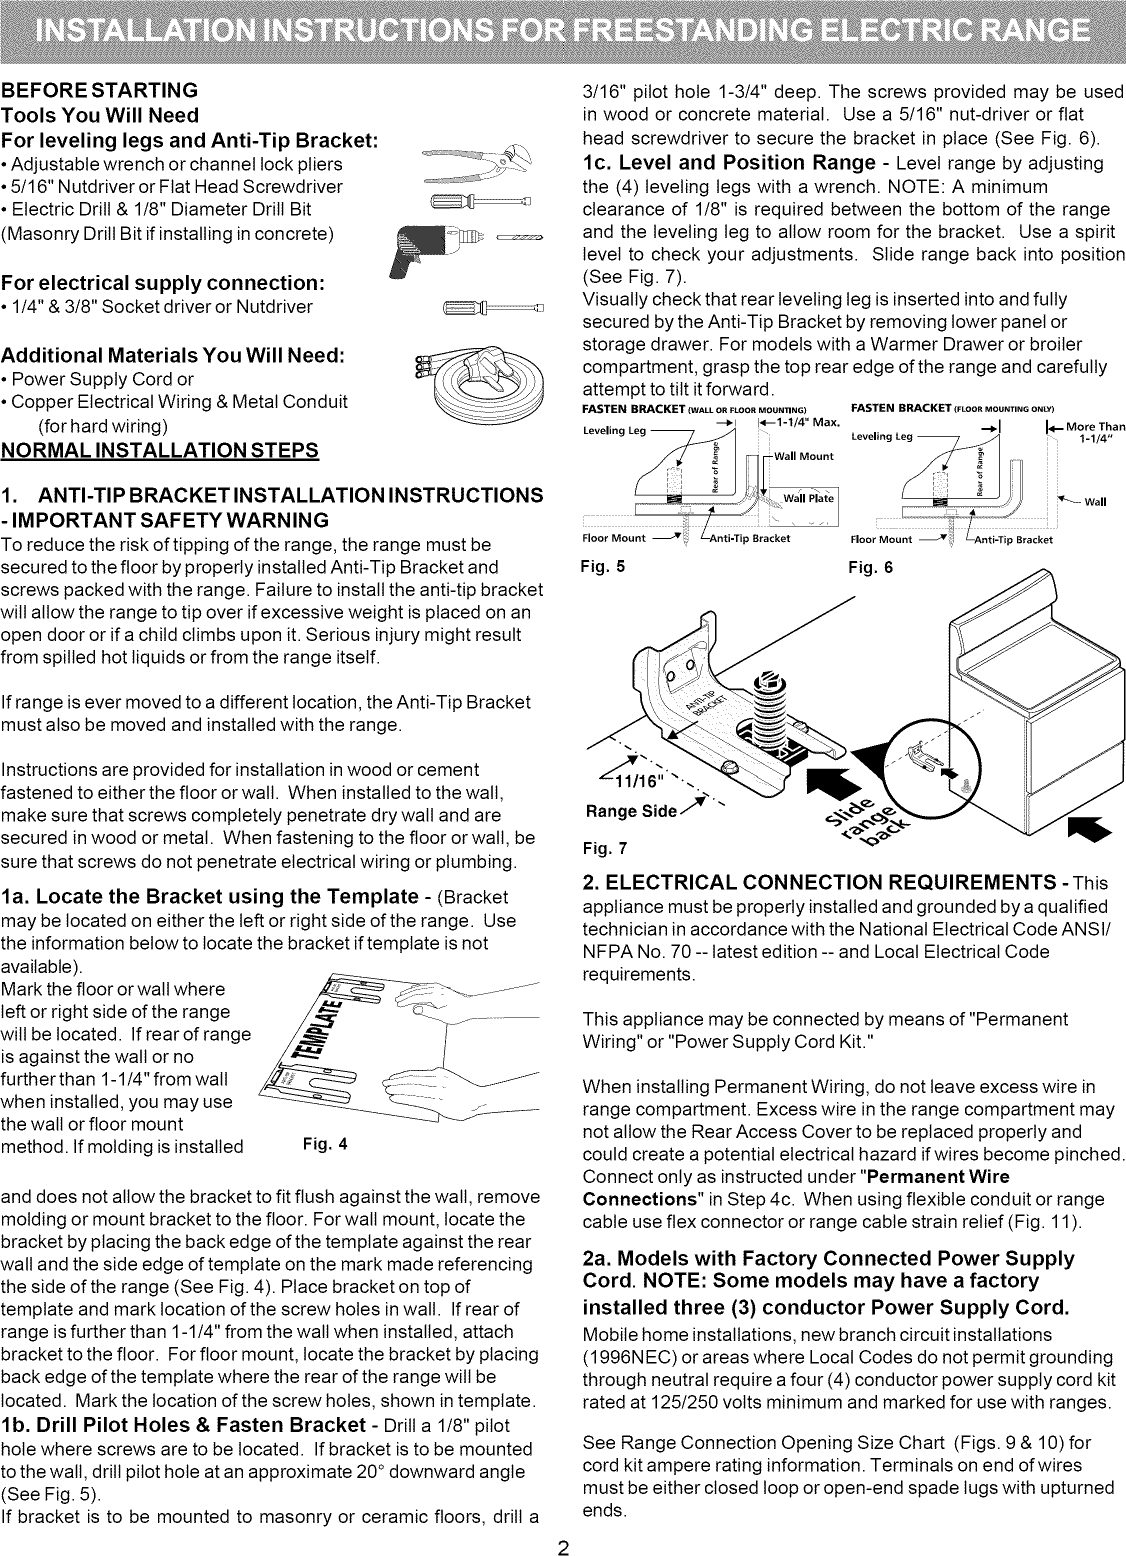 Bosch Free Standing Electric Manual L0908297 Mobile Home Wiring Diagram Branch Circuits Page 2 Of 8